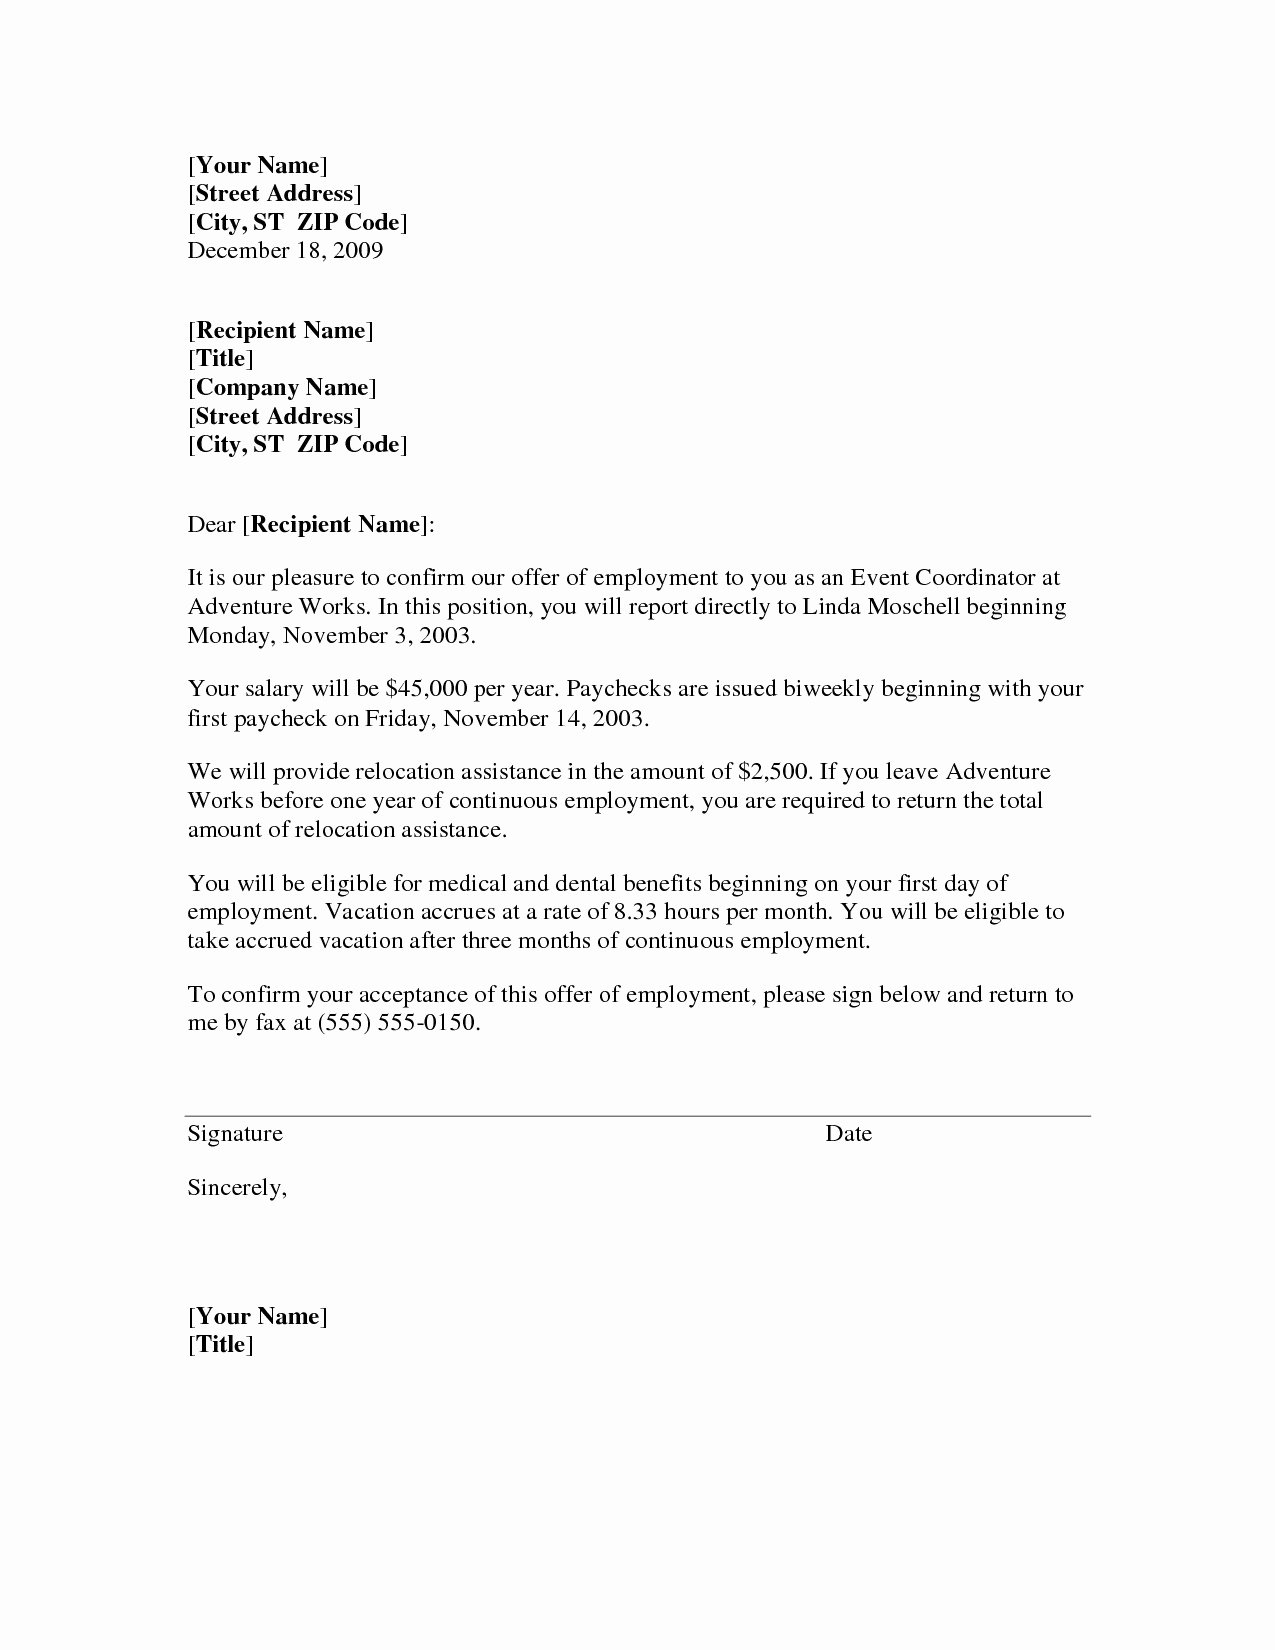 Temp to Perm Offer Letter Beautiful Temp to Perm Fer Letter Template Download